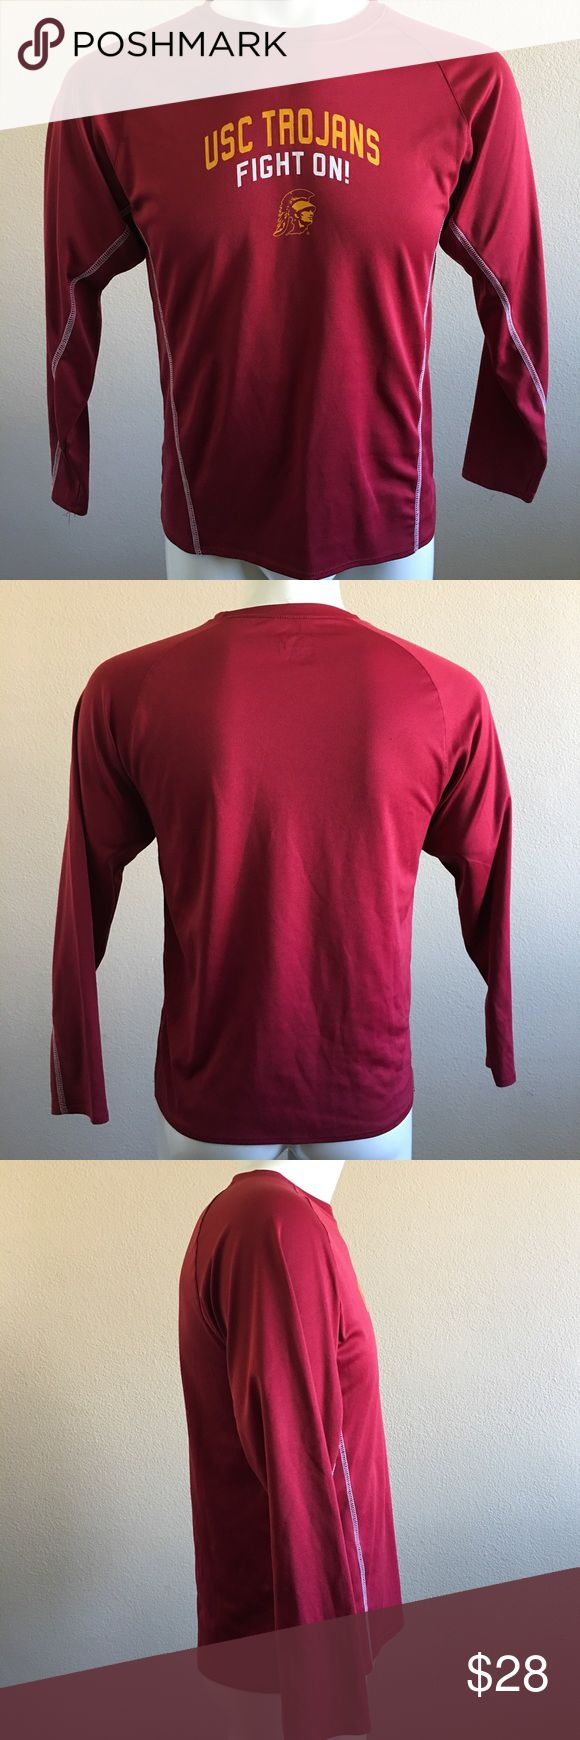 USC Trojan Pro Edge Fight On Athletic Shirt USC College Trojan Fight On! Long Sleeve Shirt  Color: Burgundy  Size:16/18  Material: 100% polyester   -N- Knights Apparel  Shirts Tees - Long Sleeve